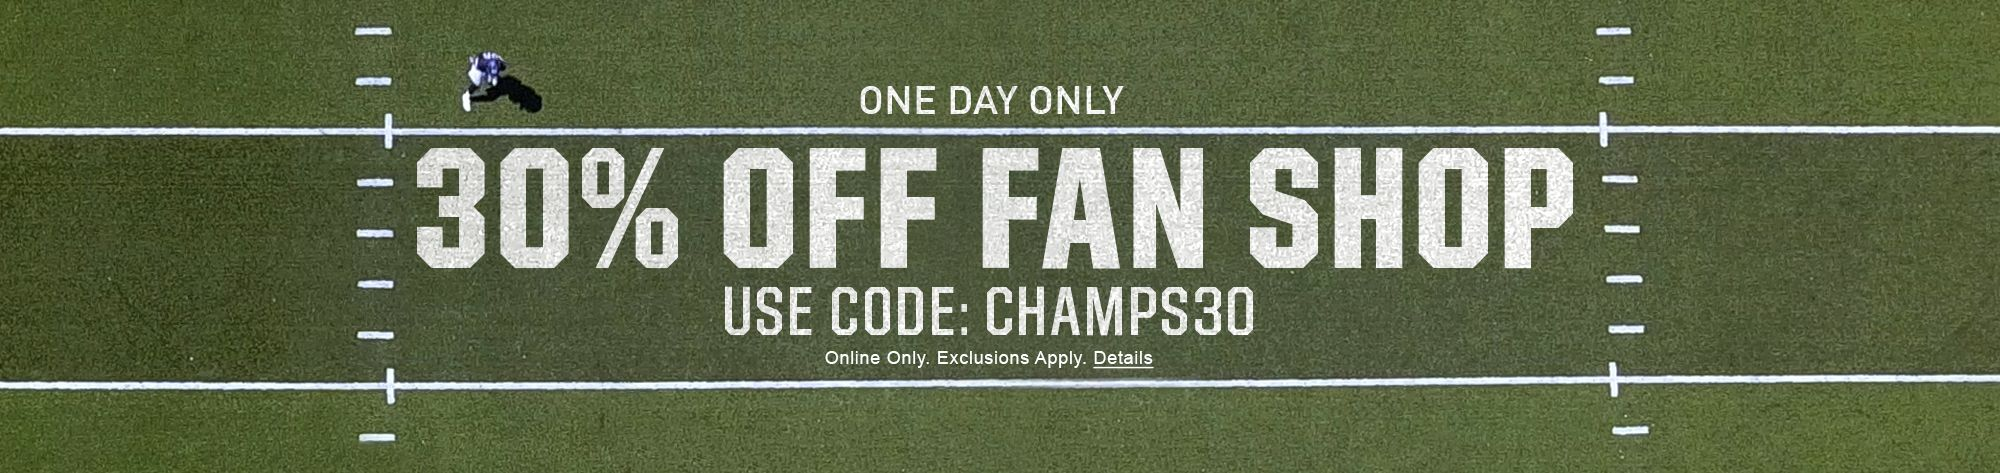 30% OFF FAN SHOP USE CODE: CHAMPS30 Online Only. Exclusions Apply. Details